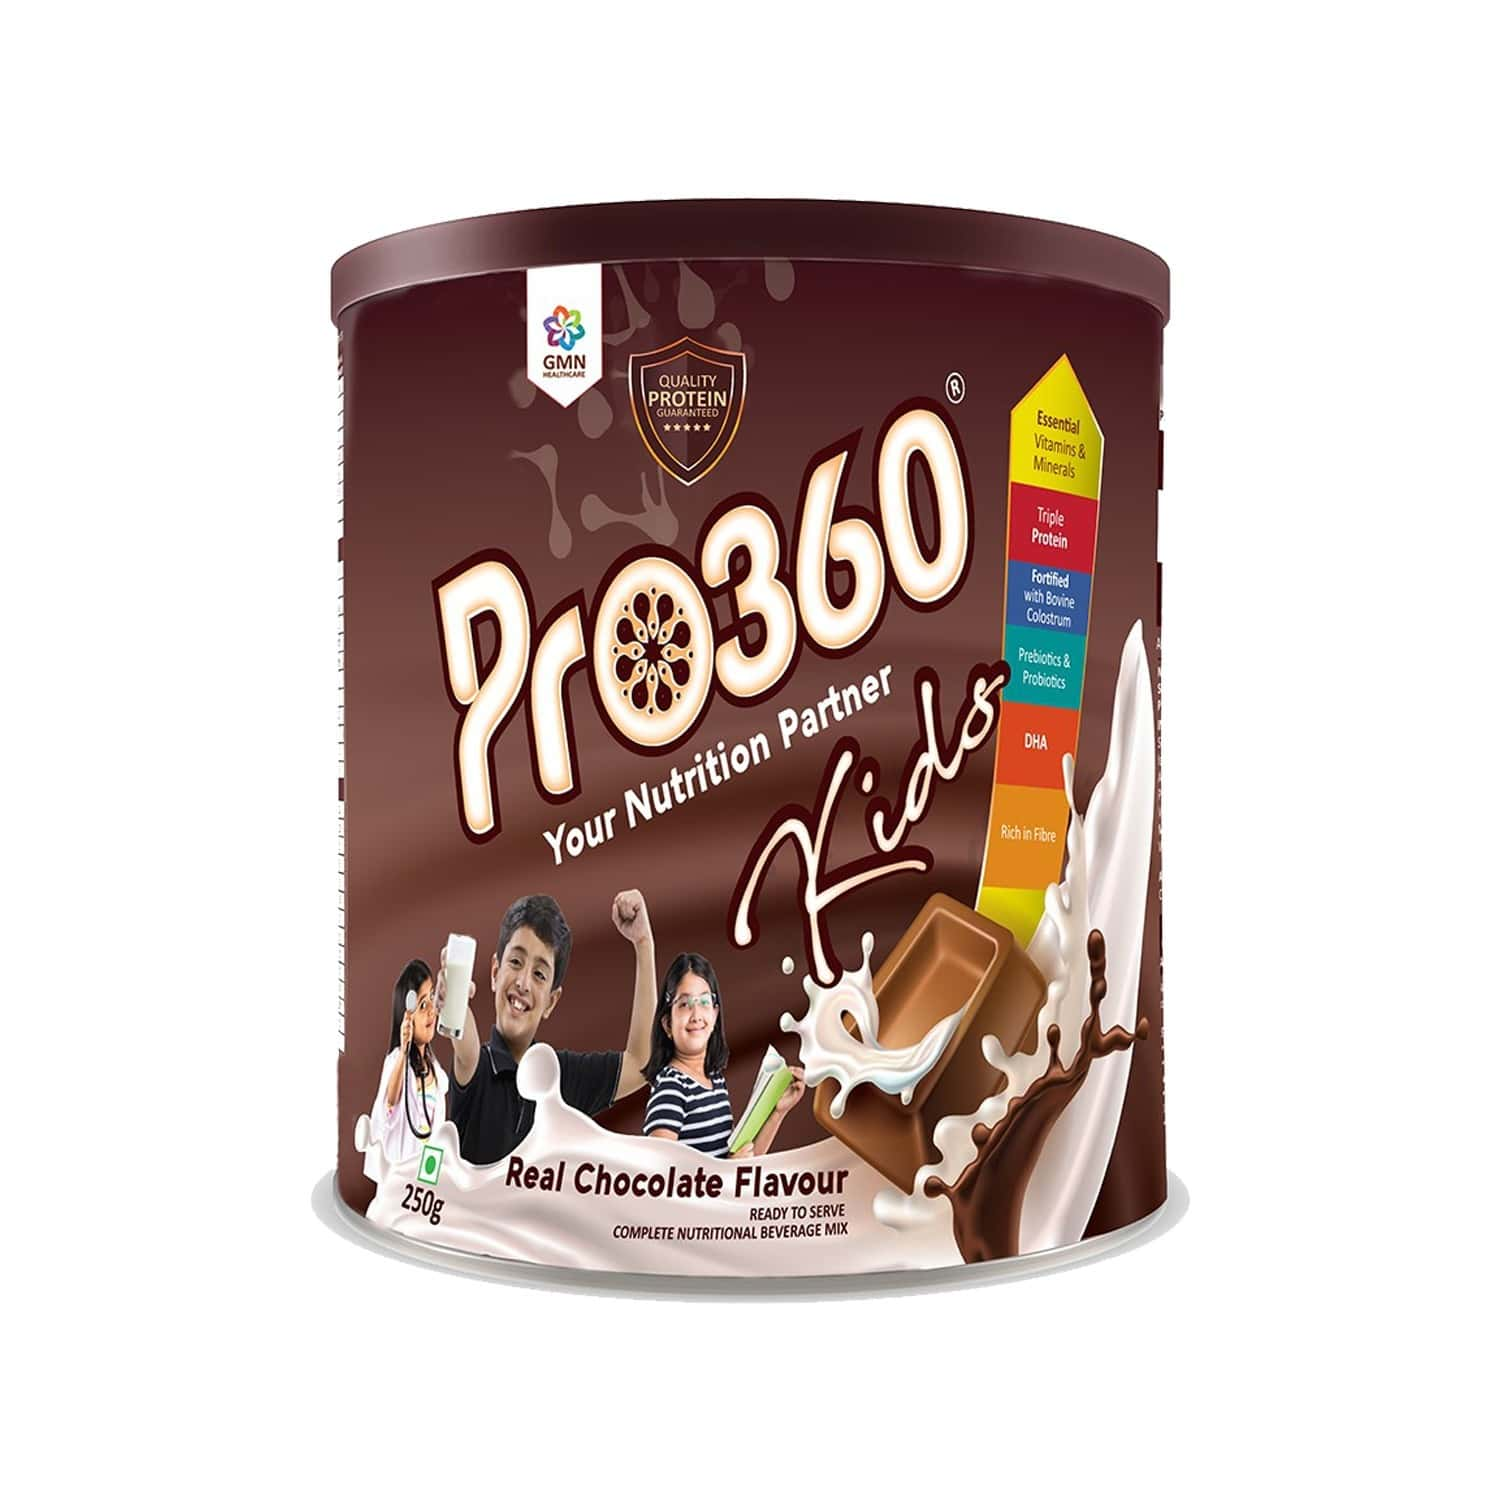 Pro360 Kids Nutritional Beverage Mix - Chocolate Flavour - 250gm - Tin